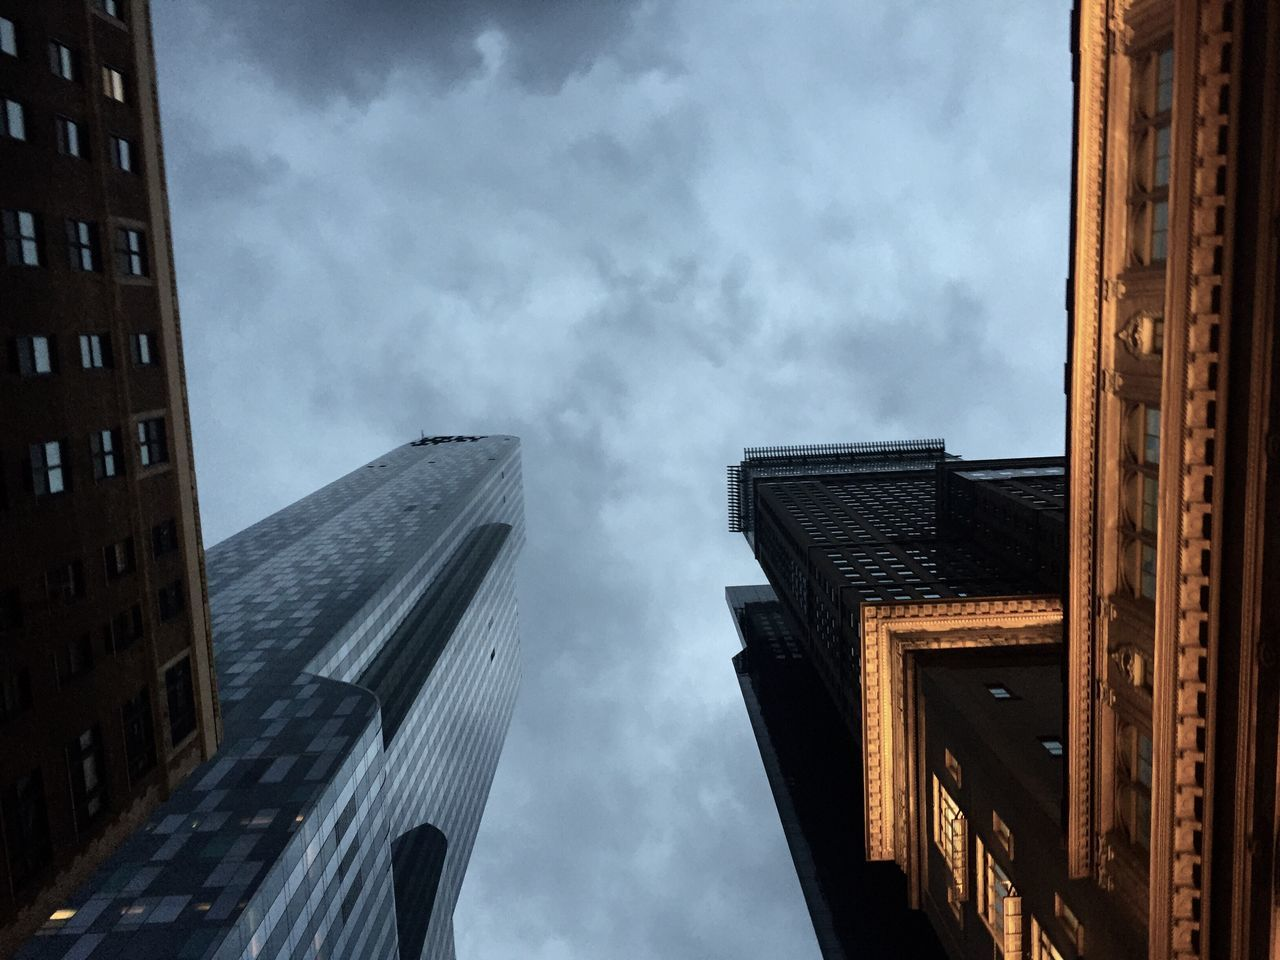 architecture, building exterior, built structure, sky, low angle view, cloud - sky, outdoors, skyscraper, modern, city, day, no people